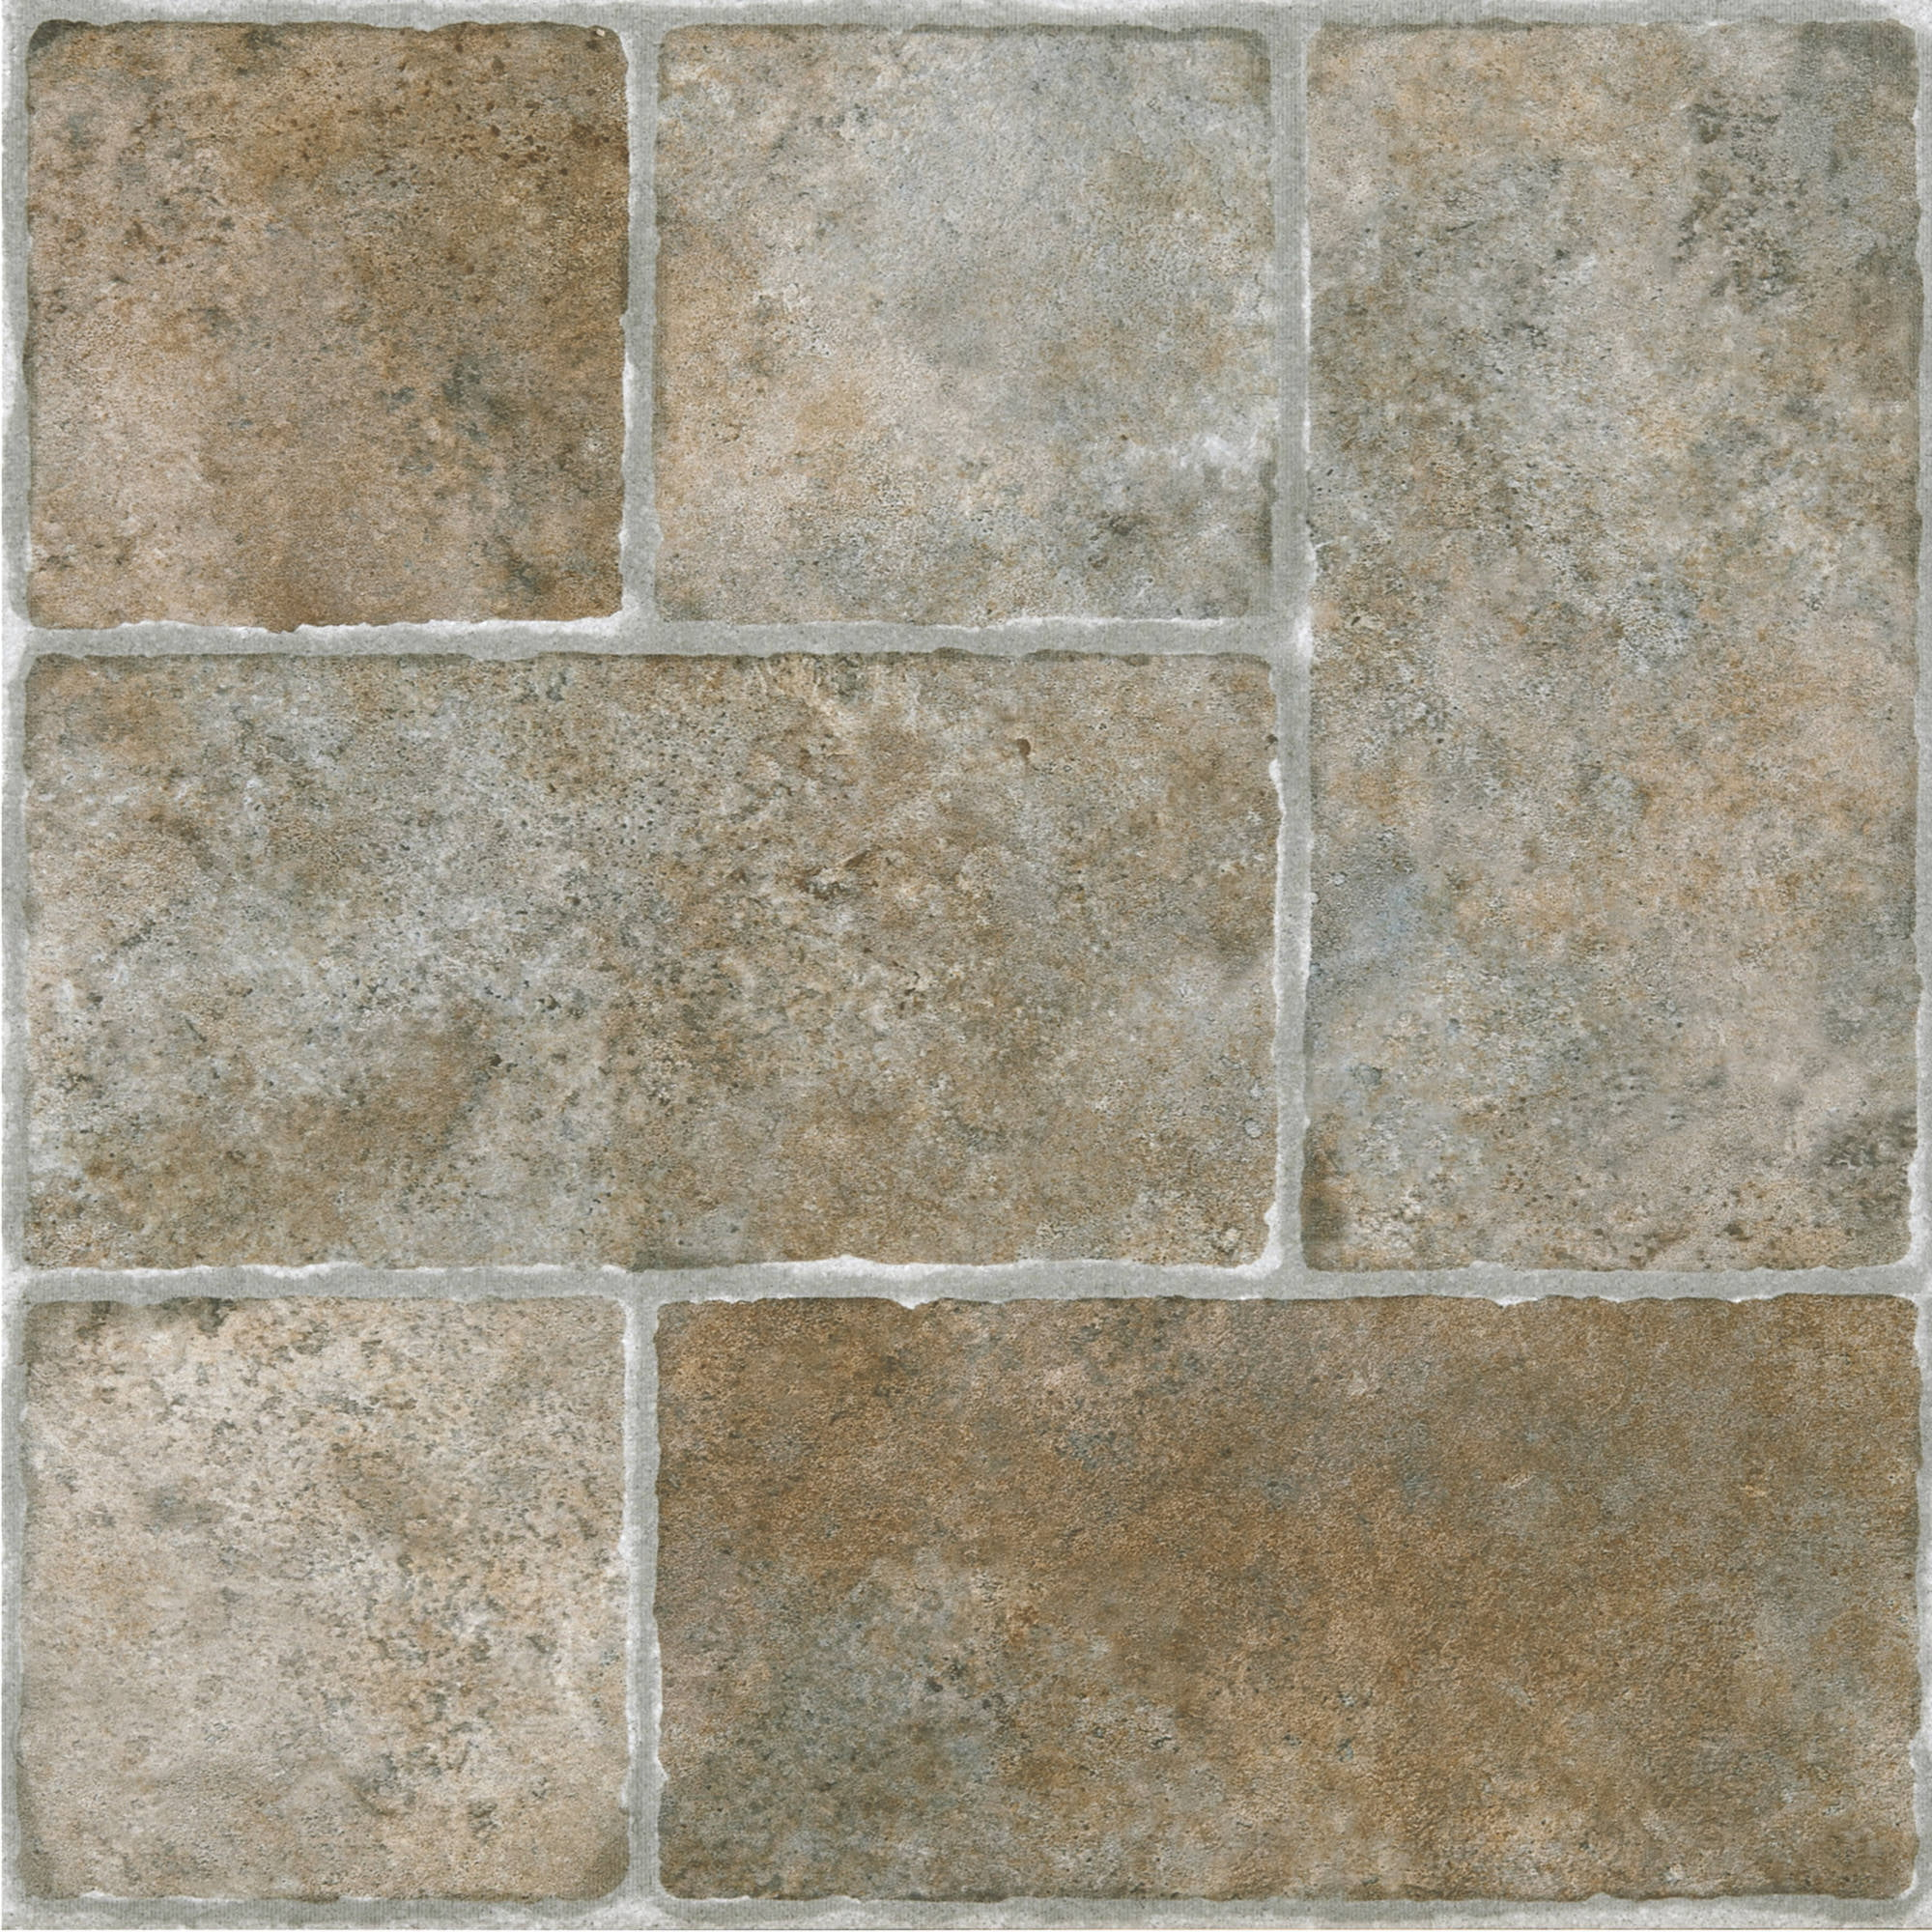 Nexus quartose granite 12x12 self adhesive vinyl floor tile 20 nexus quartose granite 12x12 self adhesive vinyl floor tile 20 tiles20 sqft walmart dailygadgetfo Images